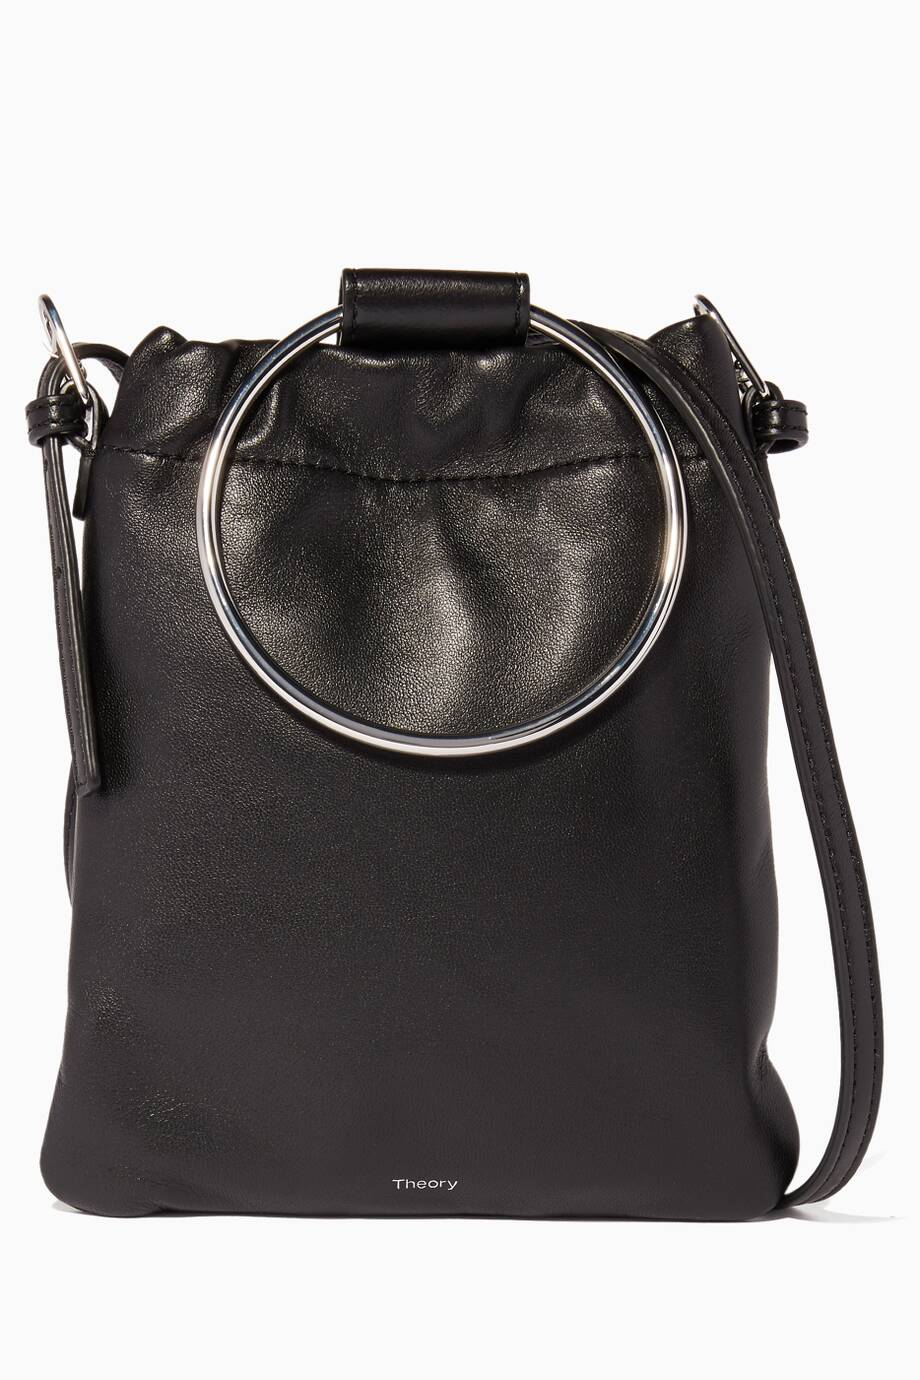 Hoop Mini Leather Tote - Black Theory 5kYWjxeVF